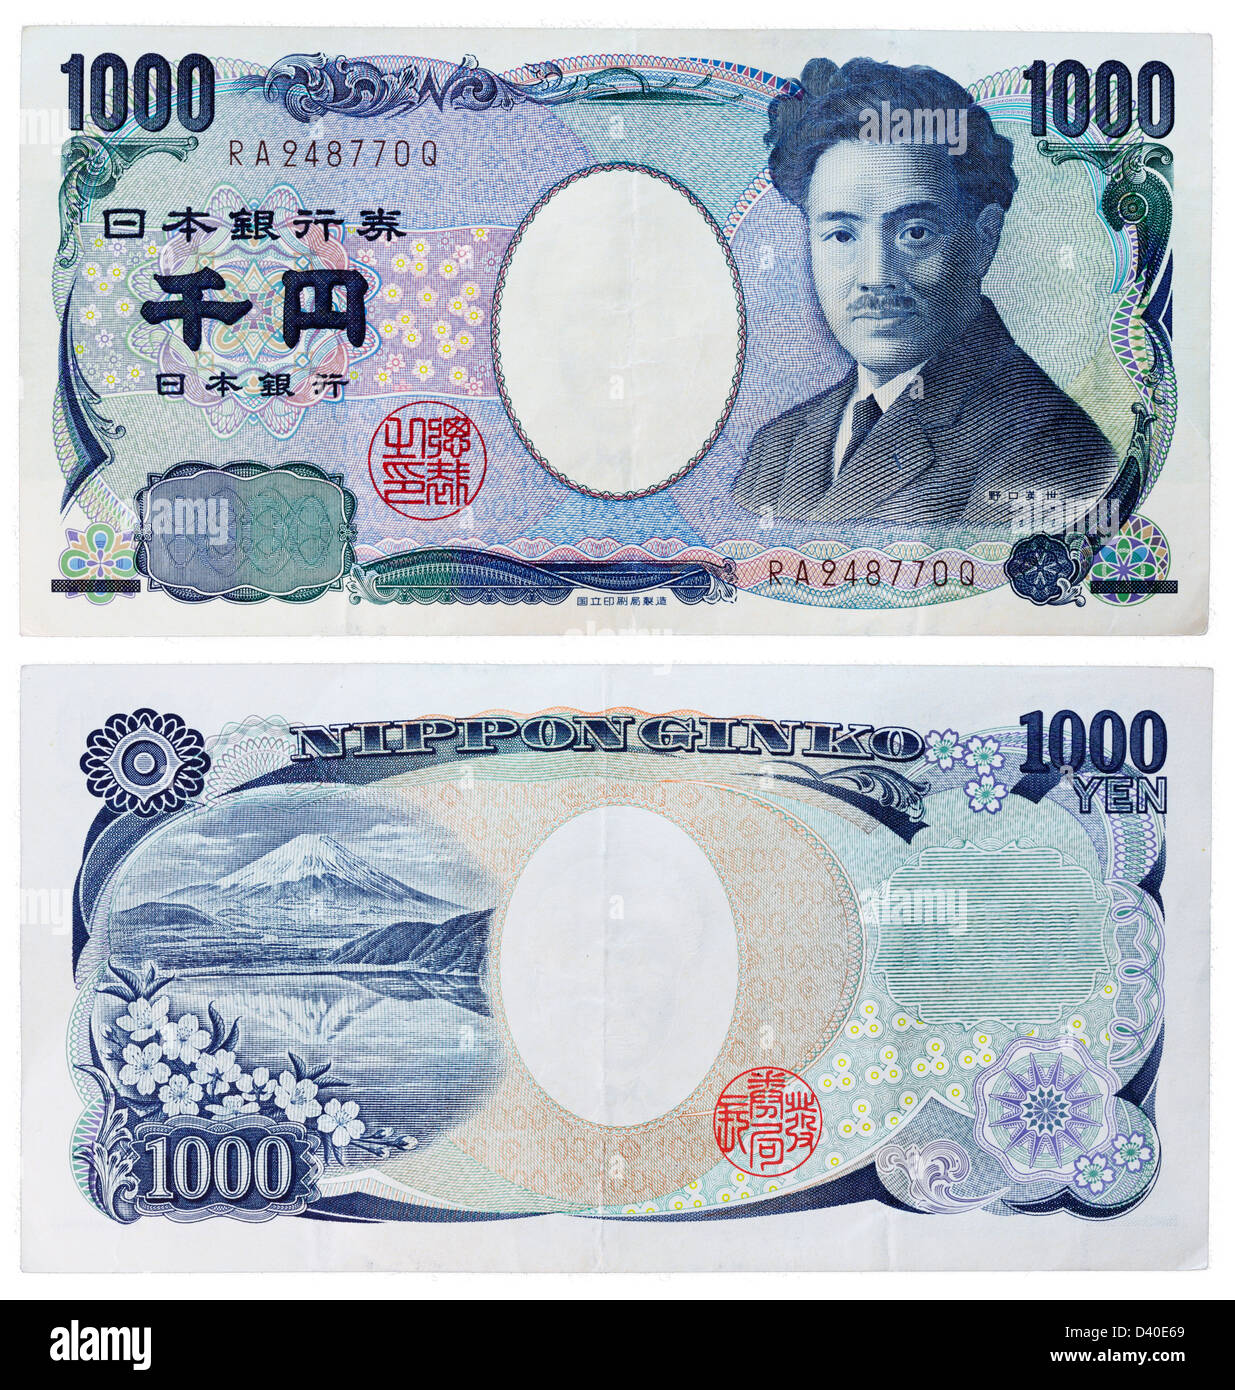 1000 Yen banknote, Hideo Noguchi and view of Mount Fuji, Japan, 2004 - Stock Image